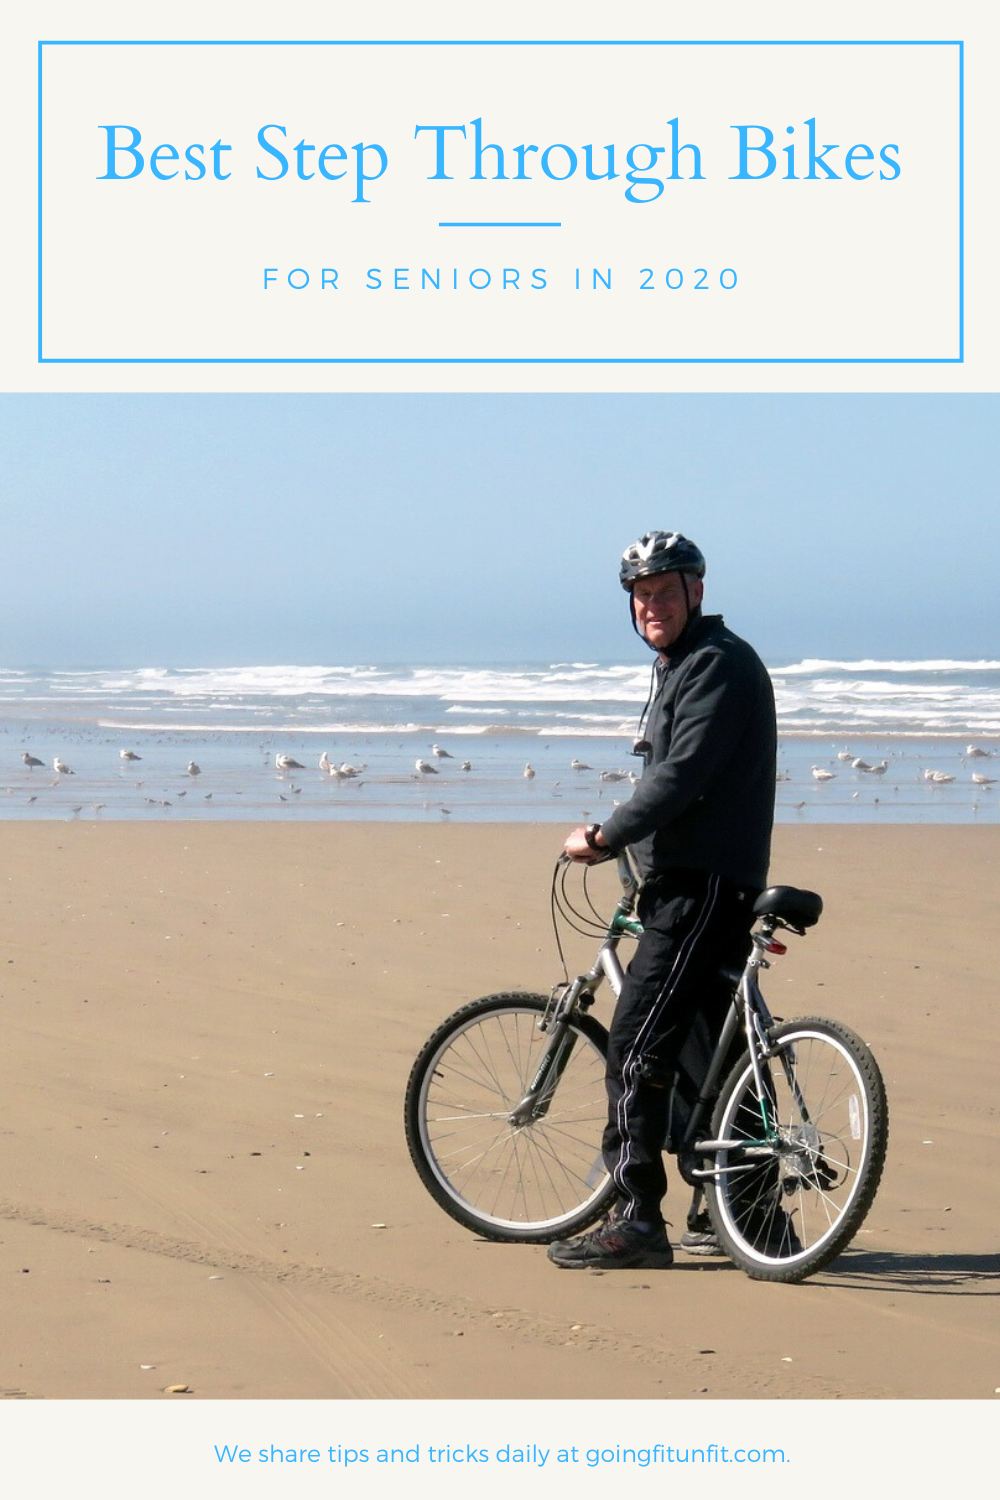 Best Step Through Bikes For Seniors 2020 In 2020 Bike Bike Ride Bicycle